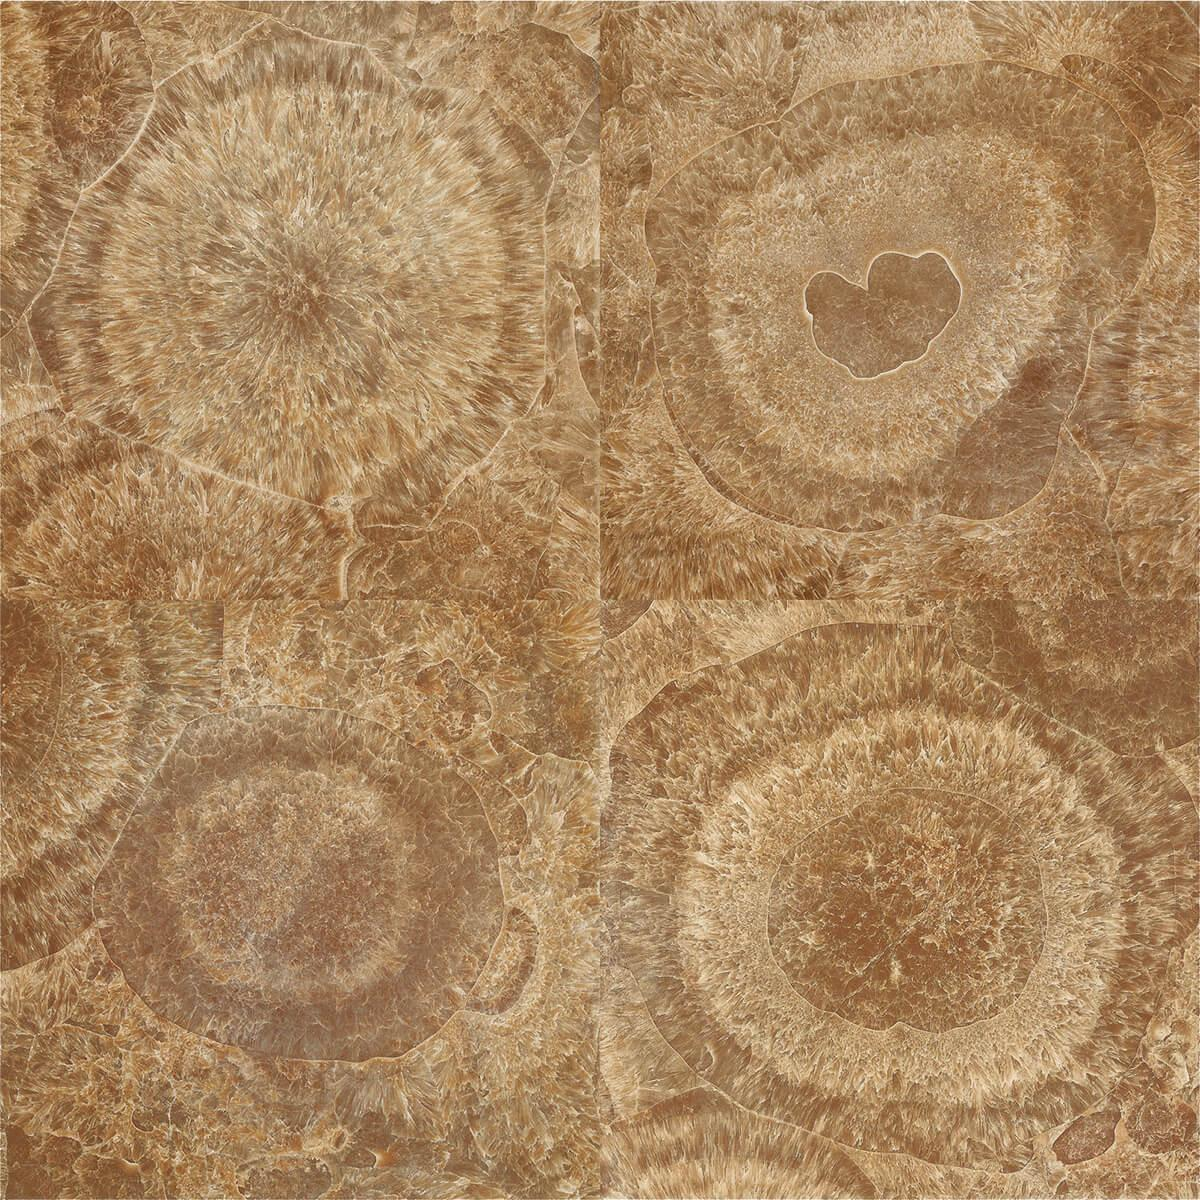 Diamond brown marble wall tile gani tile gani ceramic company manufacture marble look ceramic tiles and provide complete feature wall decoration solutions as a china well qualified diamond brown dailygadgetfo Image collections